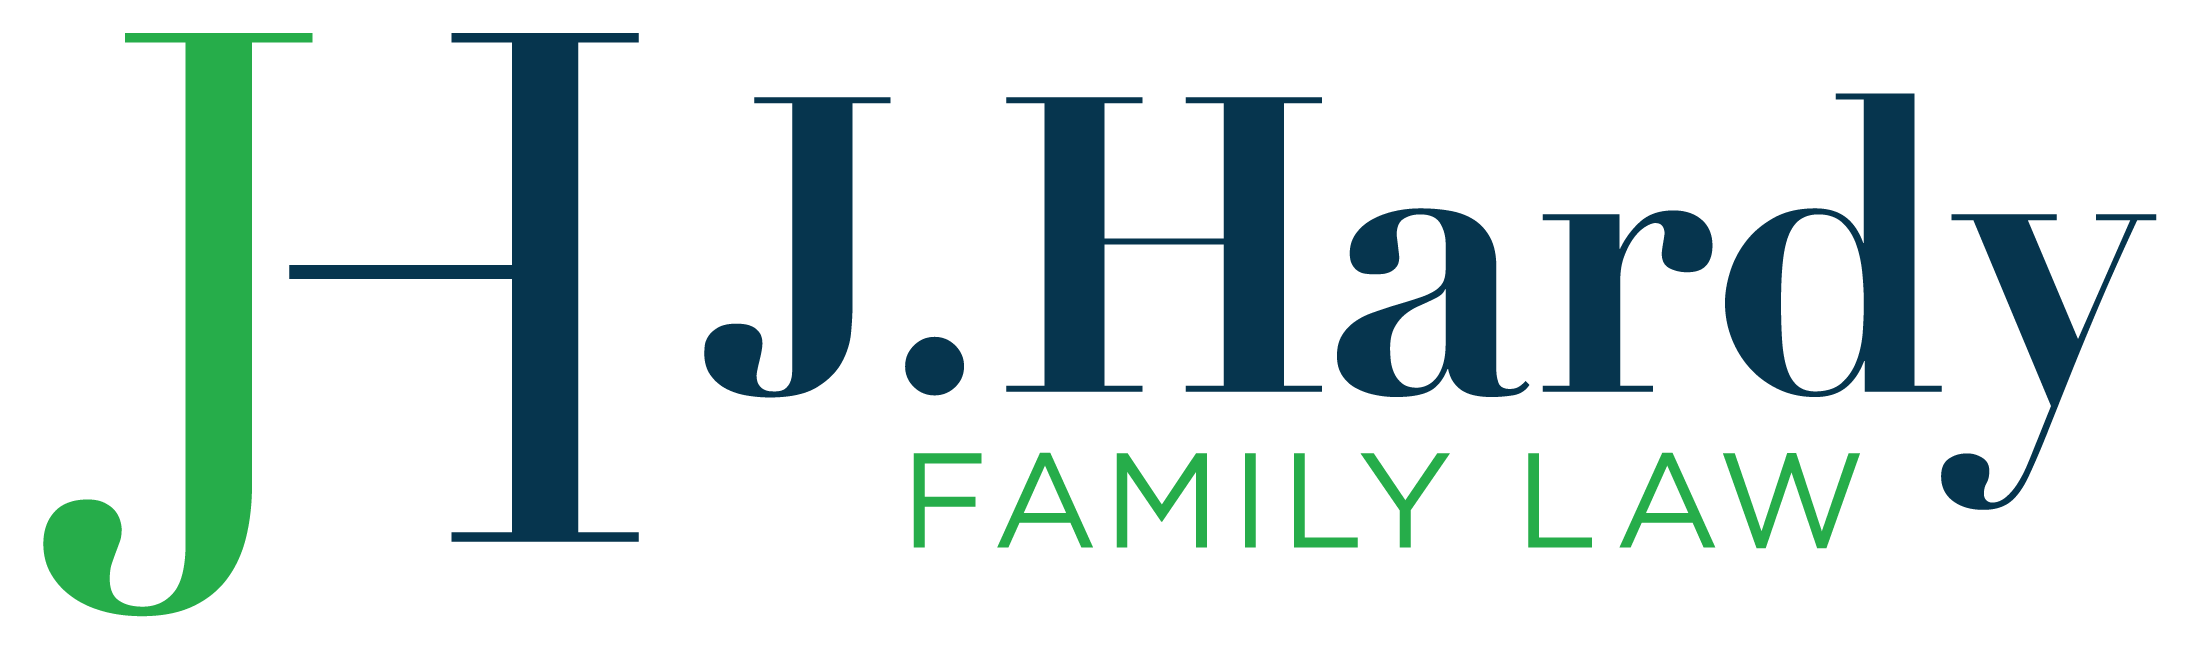 Jessie Hardy Family Law Logo